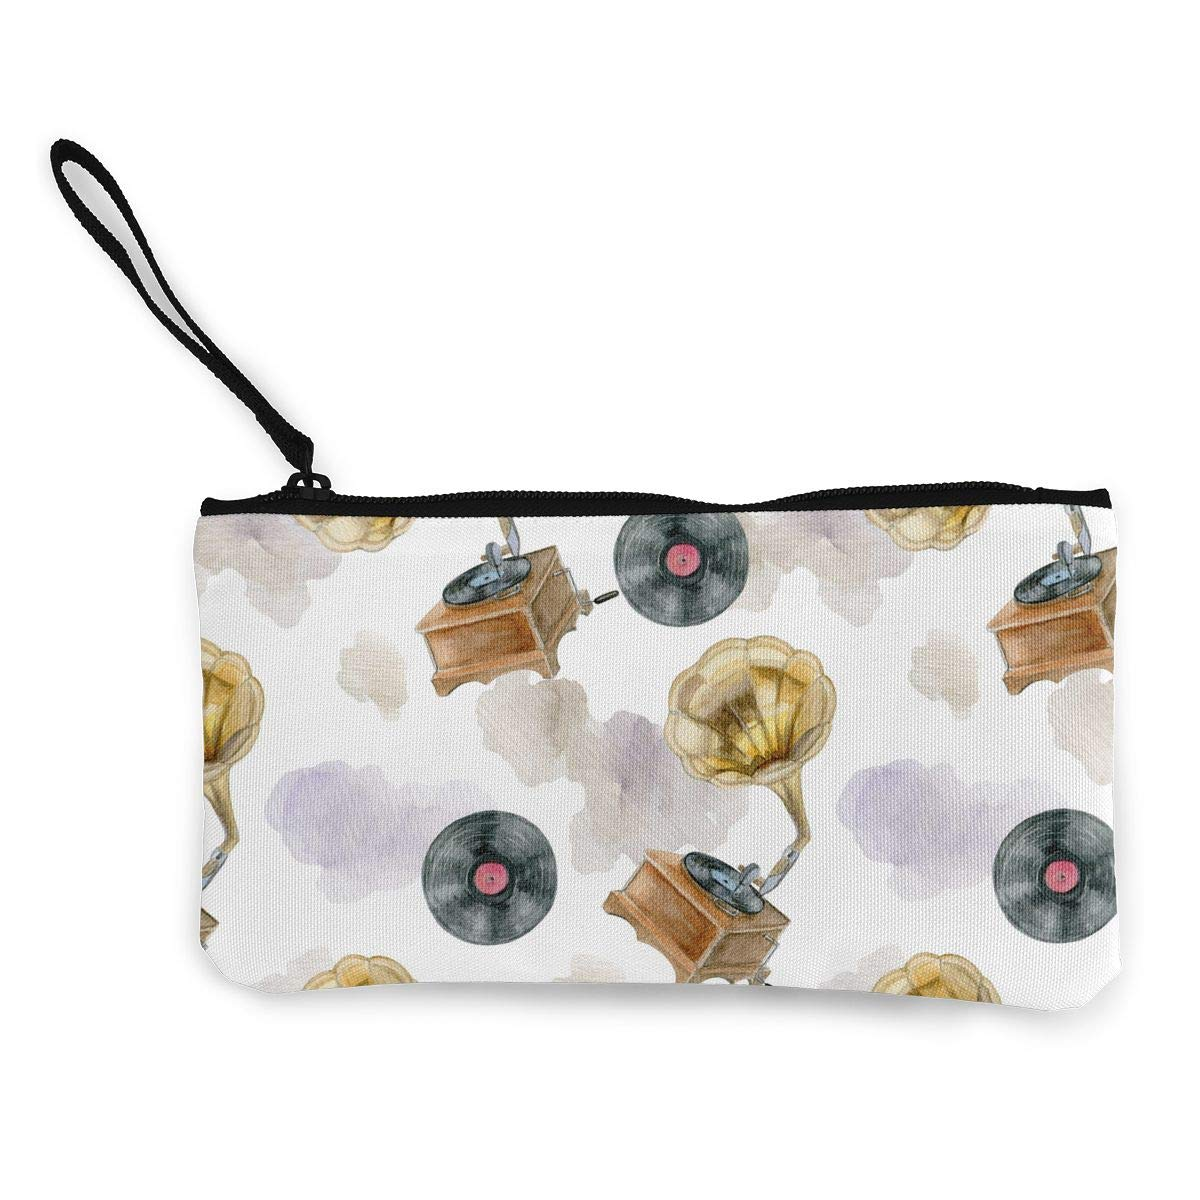 Zipper Small Purse Wallets Womens Canvas Coin Wallet Cellphone Clutch Purse With Wrist Strap Retro Style Pattern